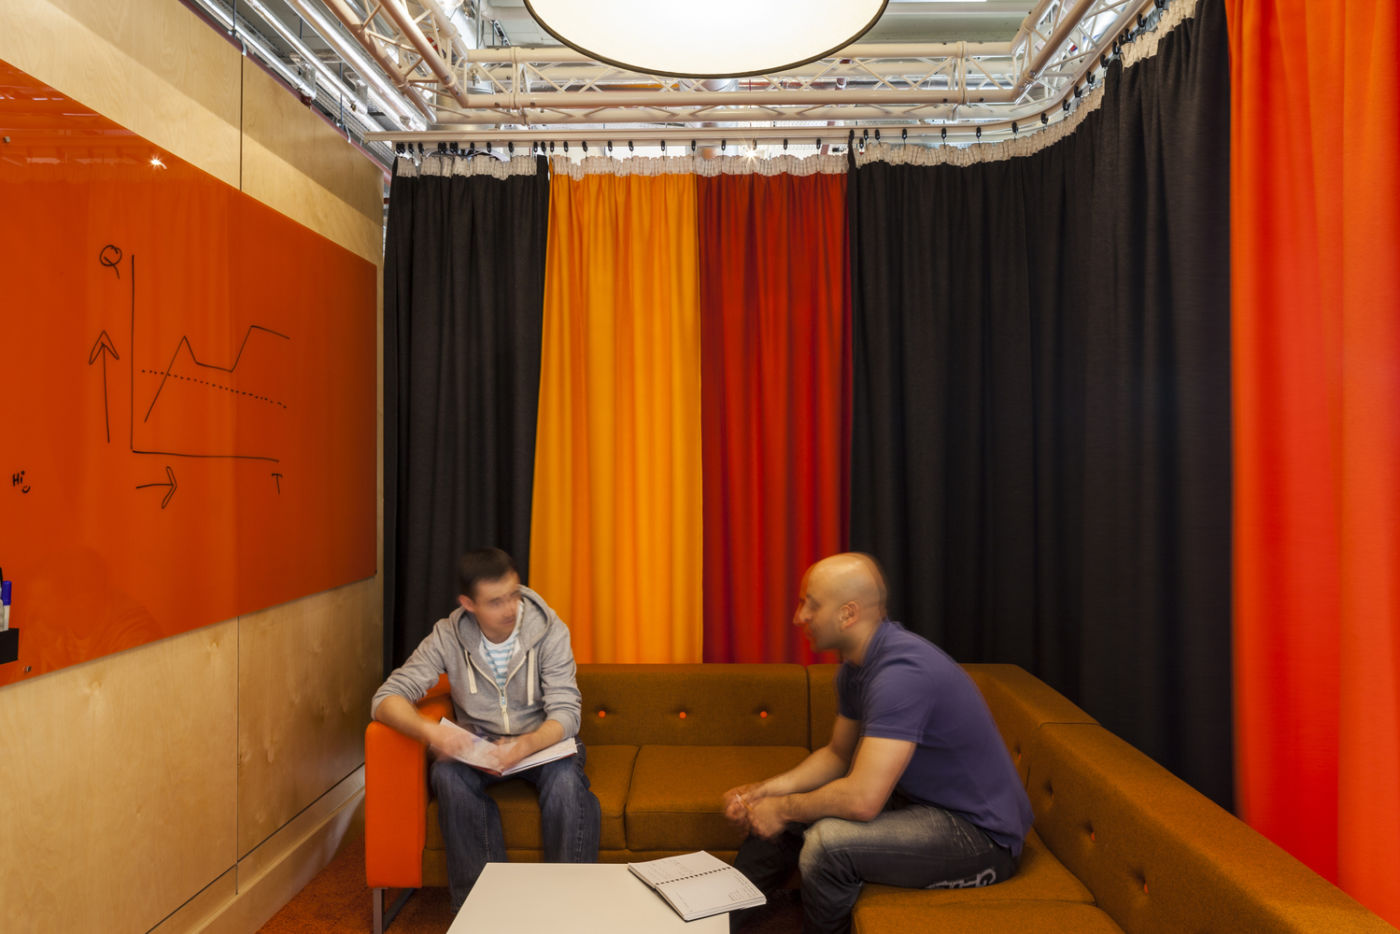 Meeting room with drapes and writable walls